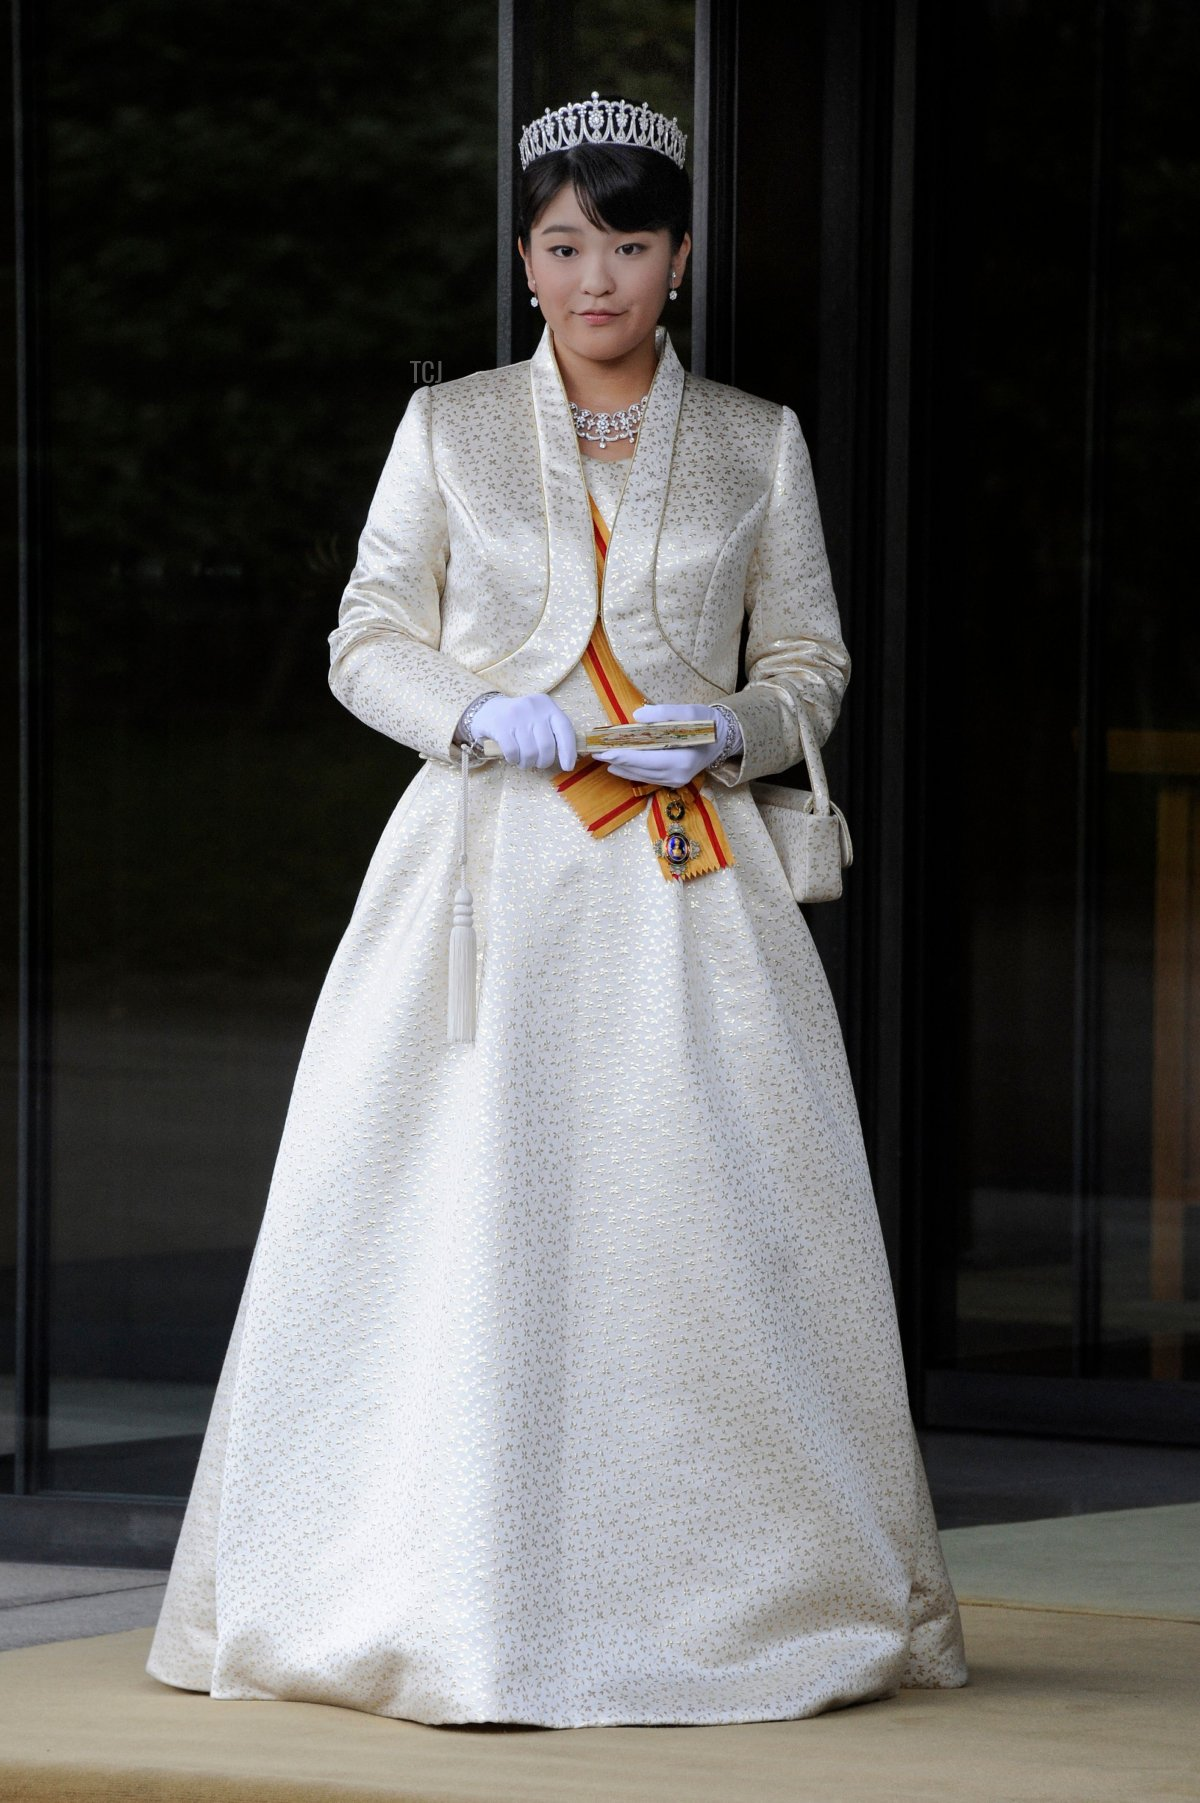 Japan's Princess Mako, the first daughter of Prince Akishino and Princess Kiko, in full dress leaves the Imperial Palace in Tokyo after meeting with the emperor and empress on October 23, 2011